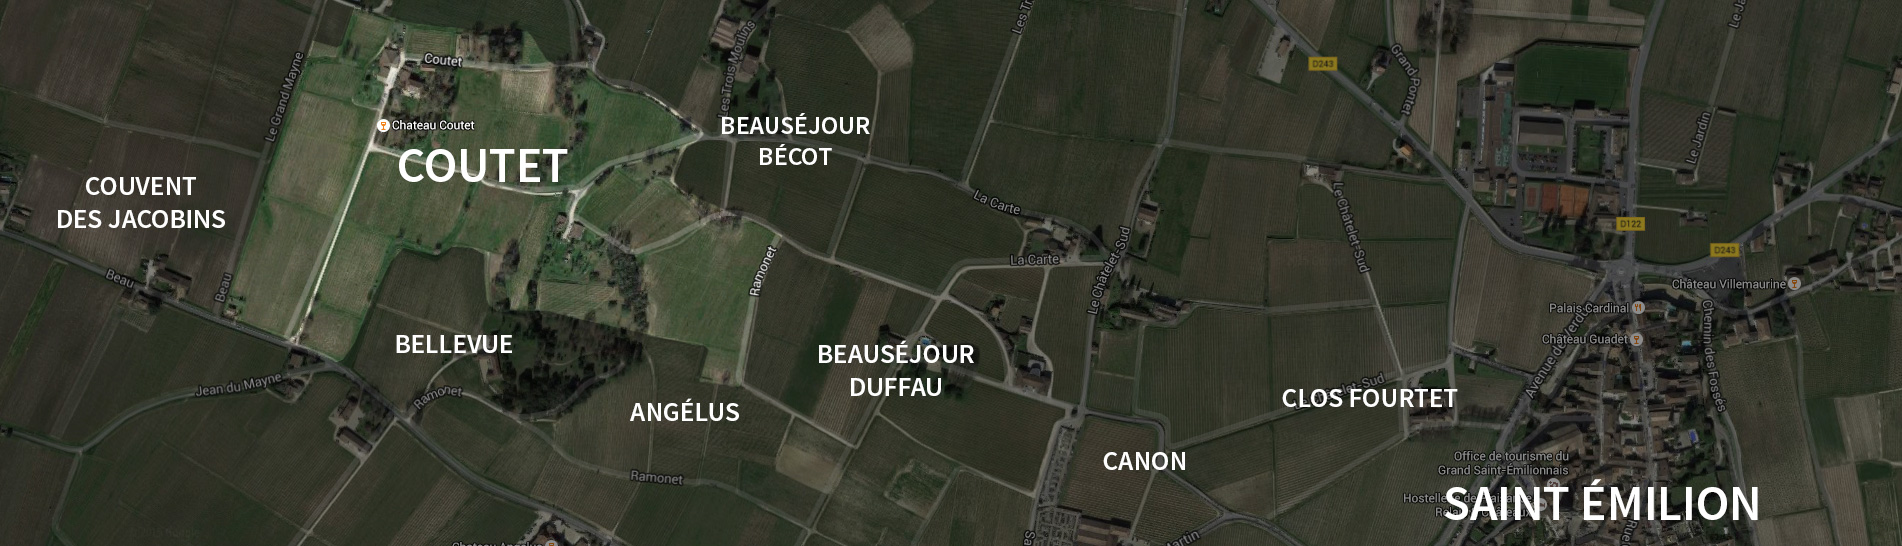 coutet-carte